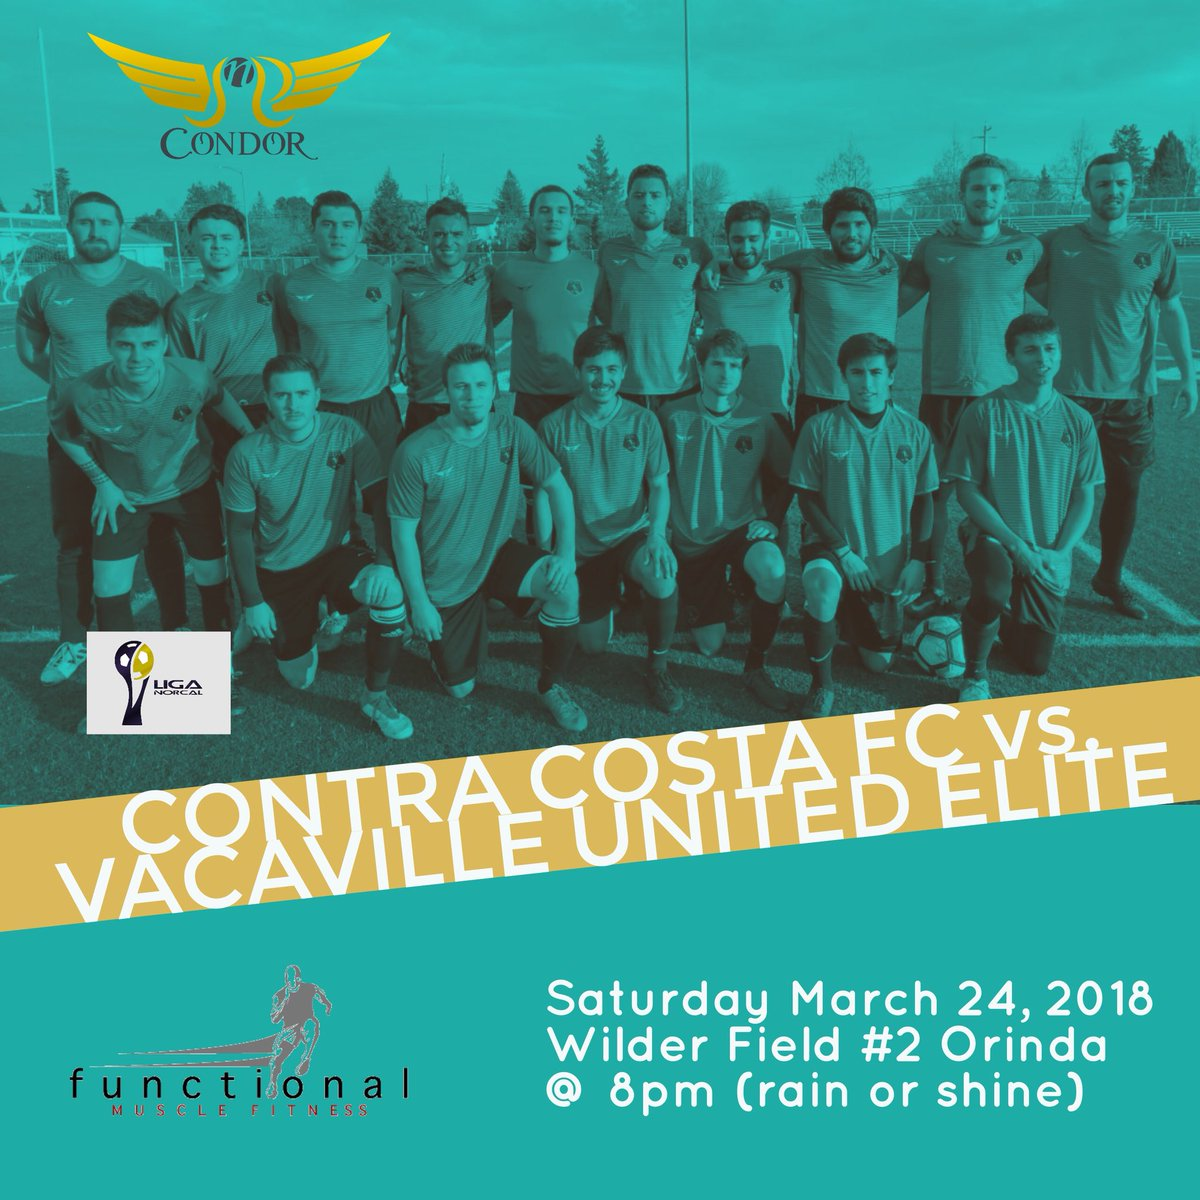 Back in action this weekend as we take on @VUESC at Wilder Field in Orinda.  Game is rain or shine. @norcalpresoccer @functional_soccer @functionalmuscle @guslaredo #vamosaganar #ccfc #contracostafc #liganorcal #supportlocalsoccer #supportlocalfutbol #contracostacounty